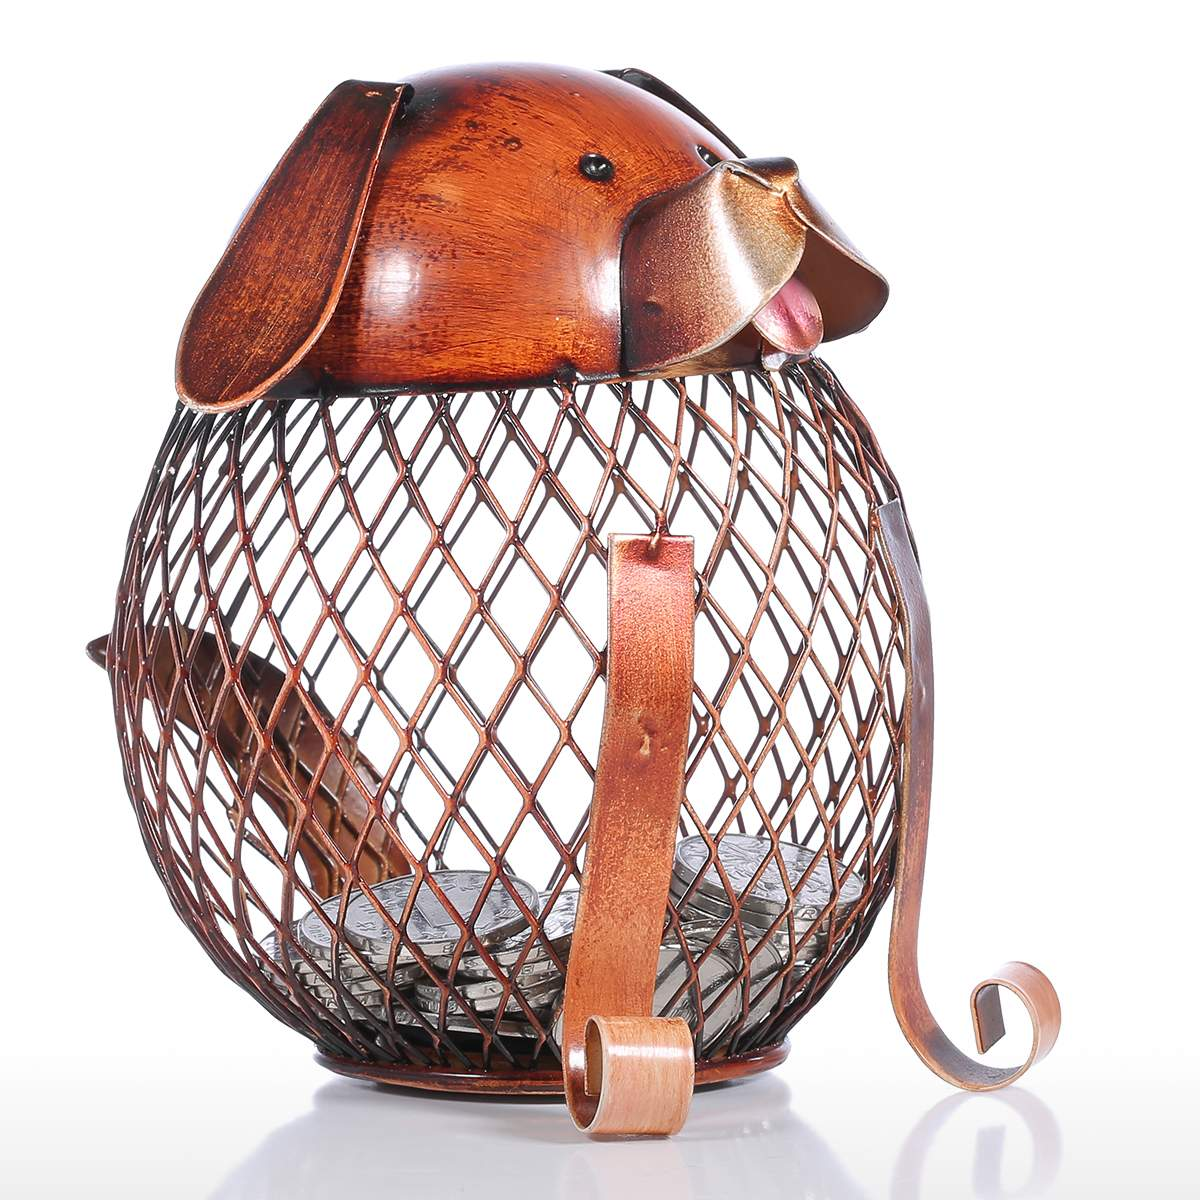 Metal Dog Puppy Coin Bank, Money Piggy Bank, Metal Coin Bank Home Decor - boopetclub